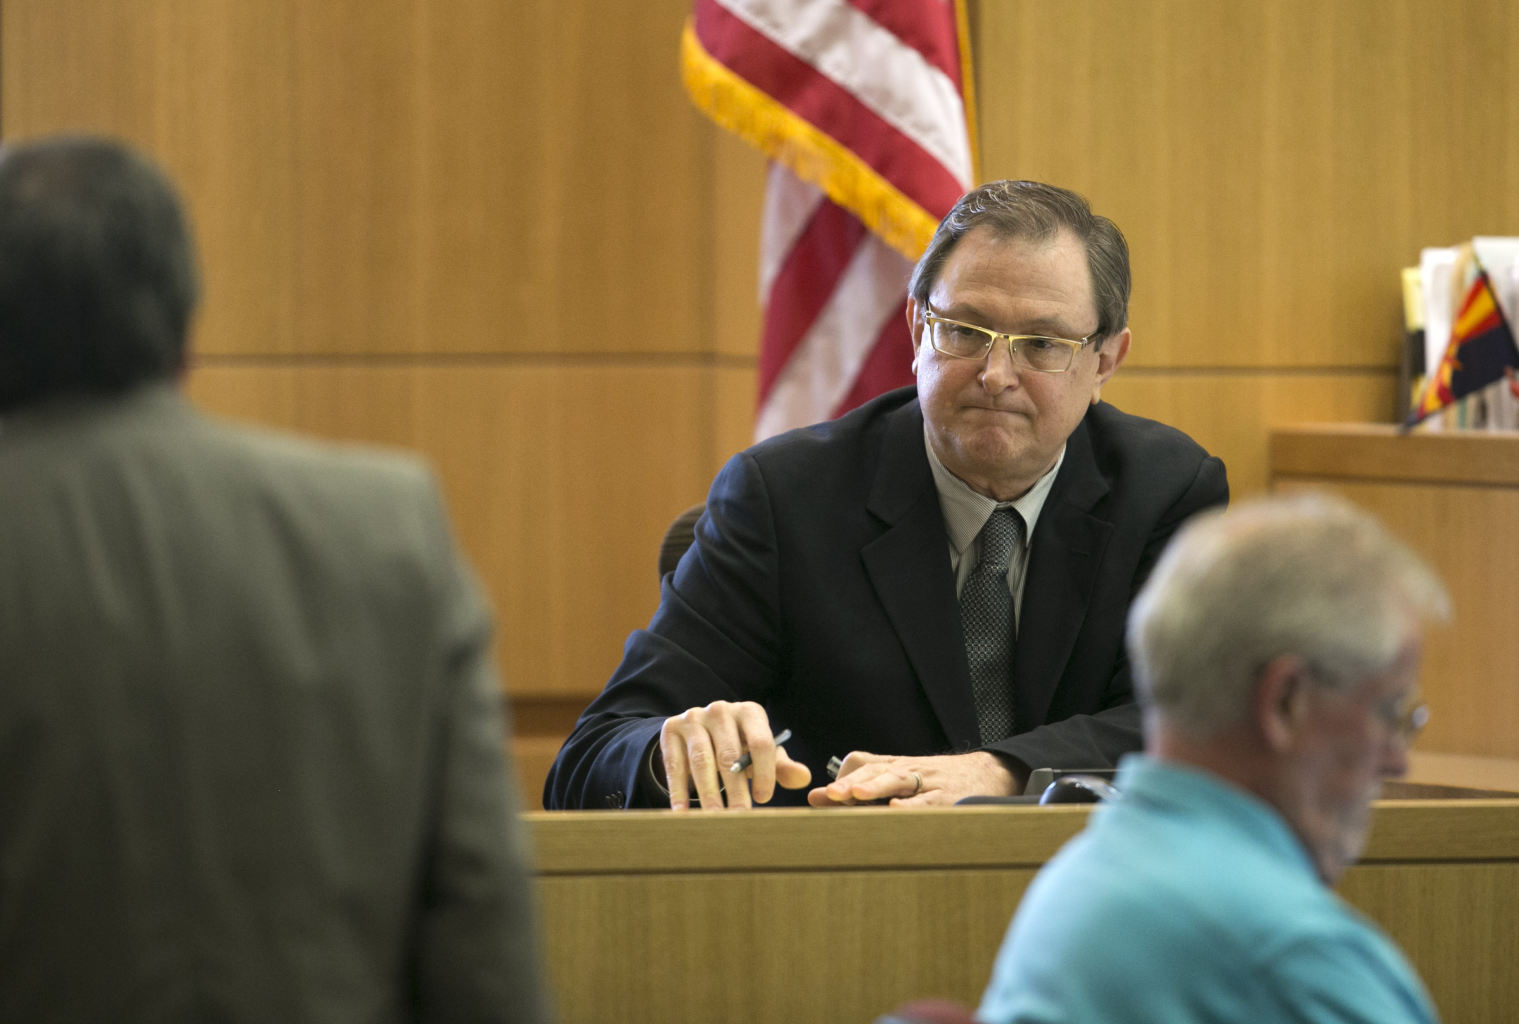 witness for the defense, is cross examined by Prosecutor Juan Martinez ...